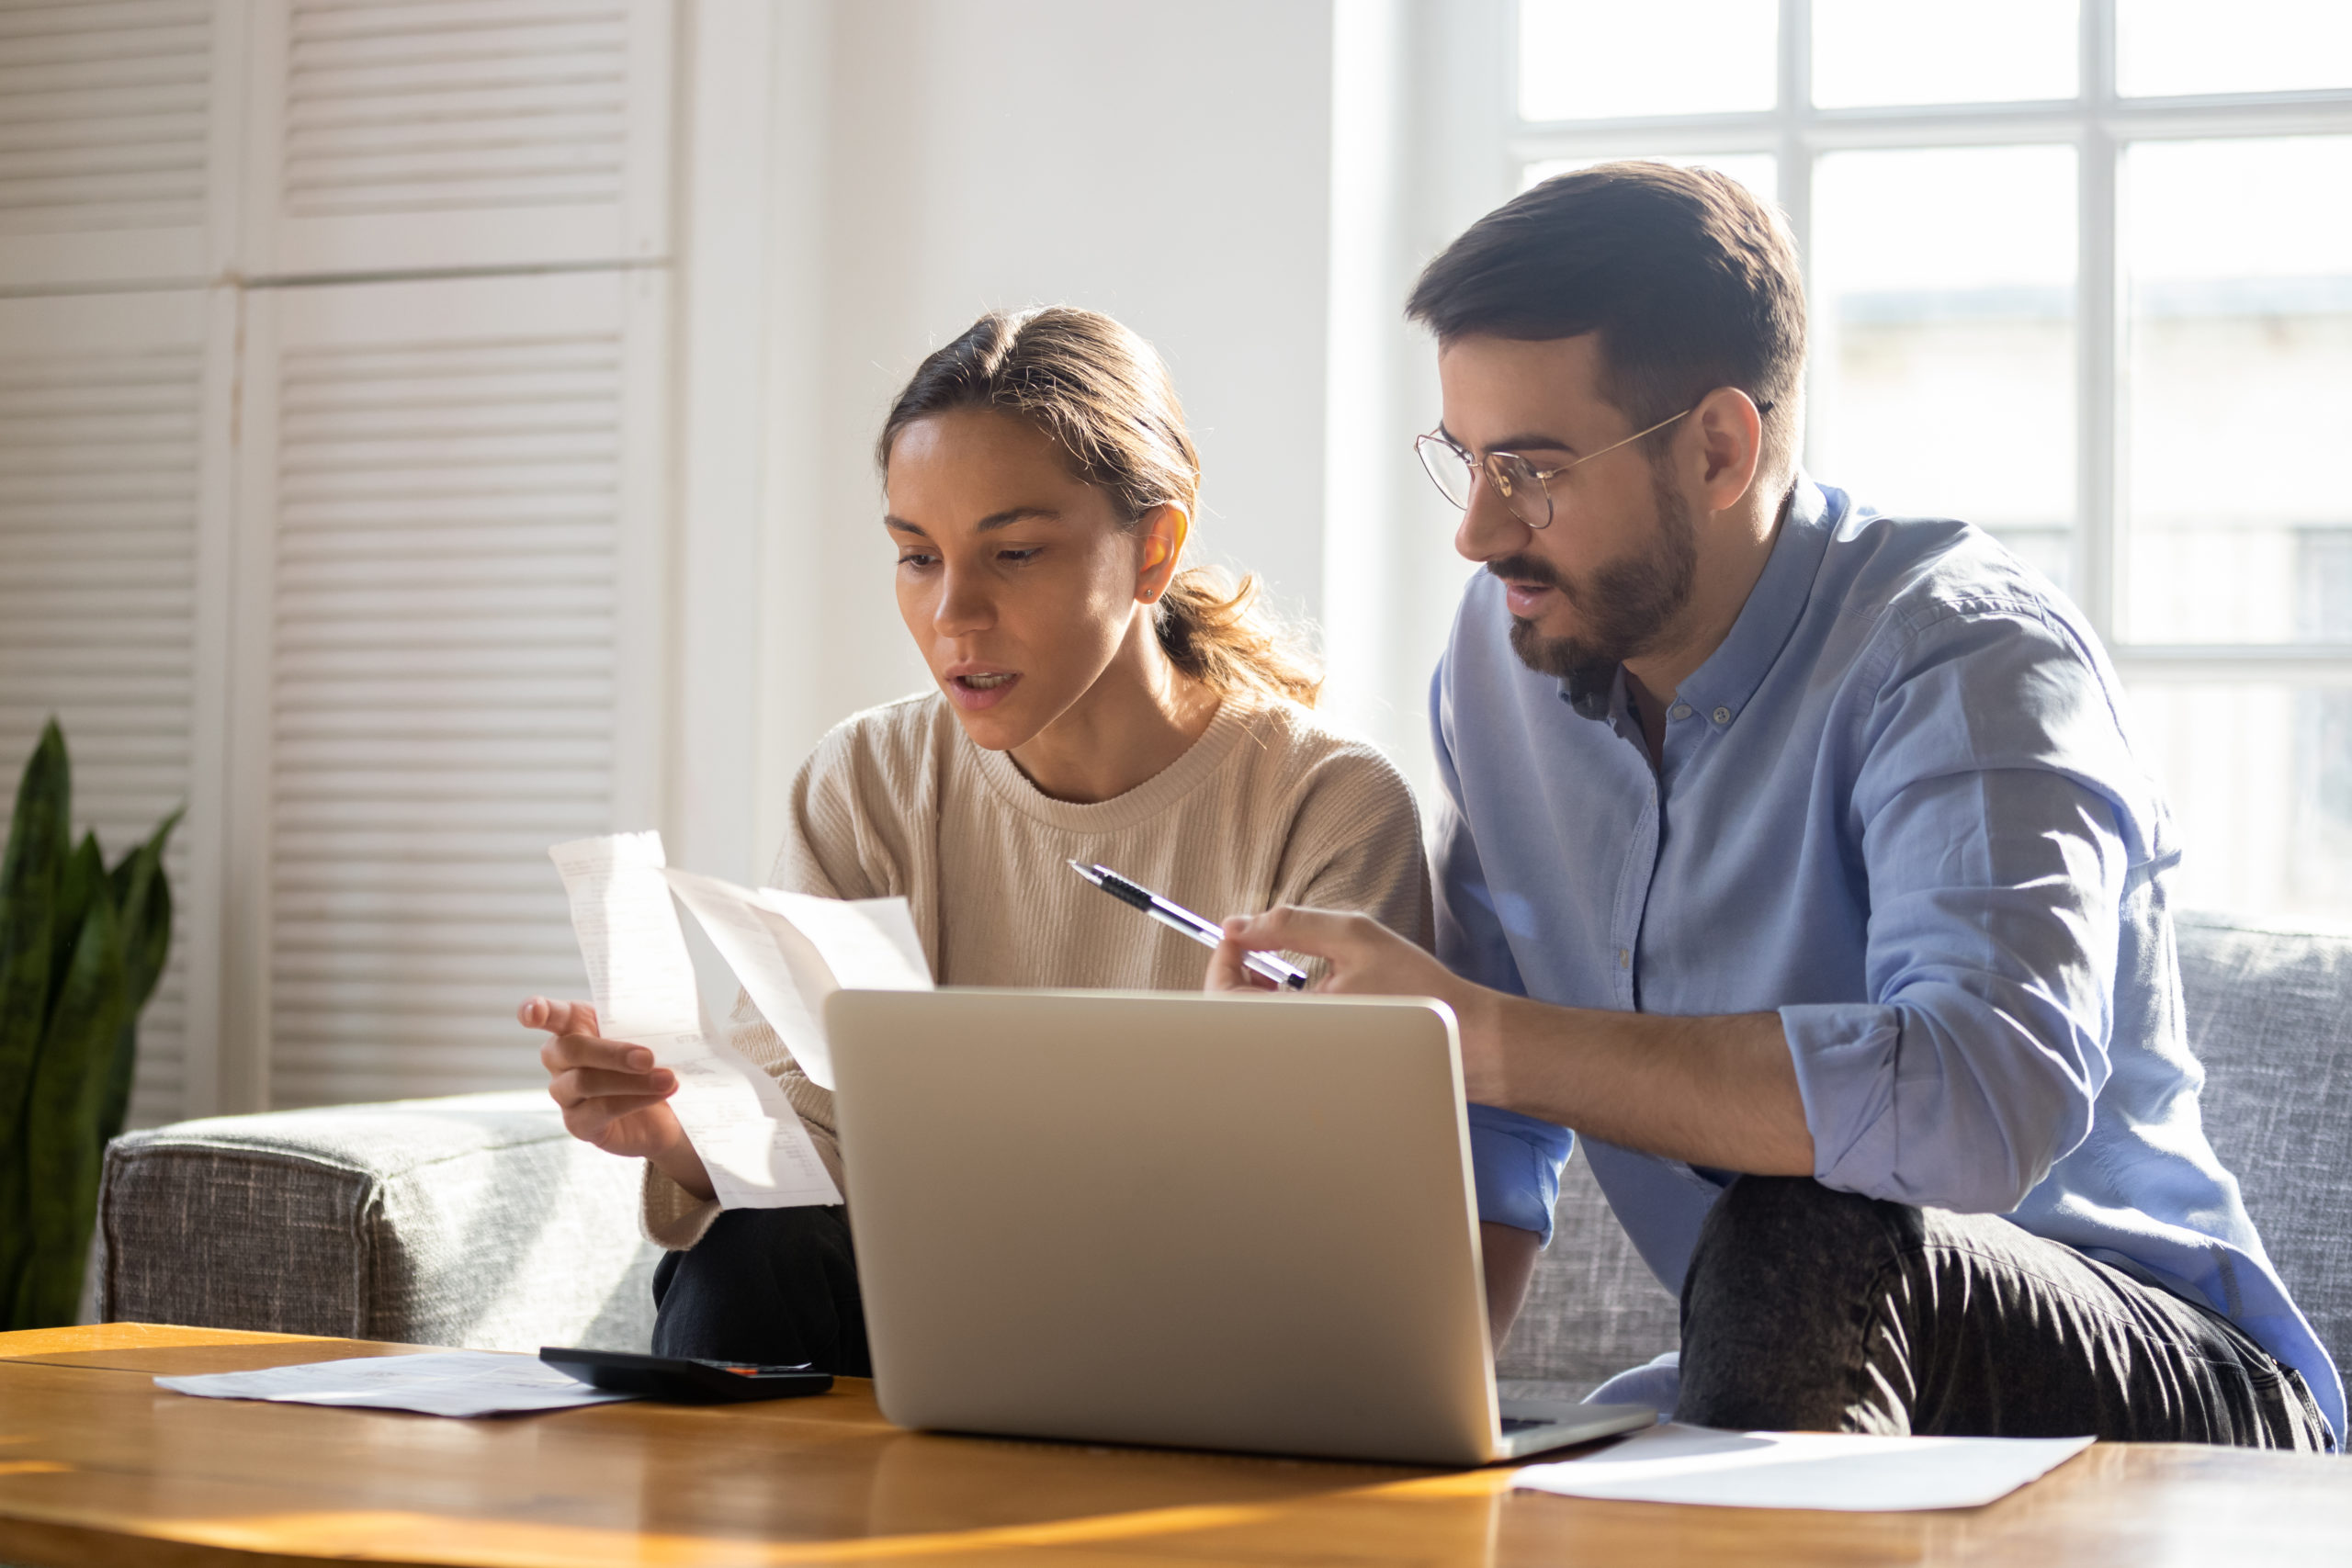 a woman and a man infront of a laptop while looking at pieces of paper